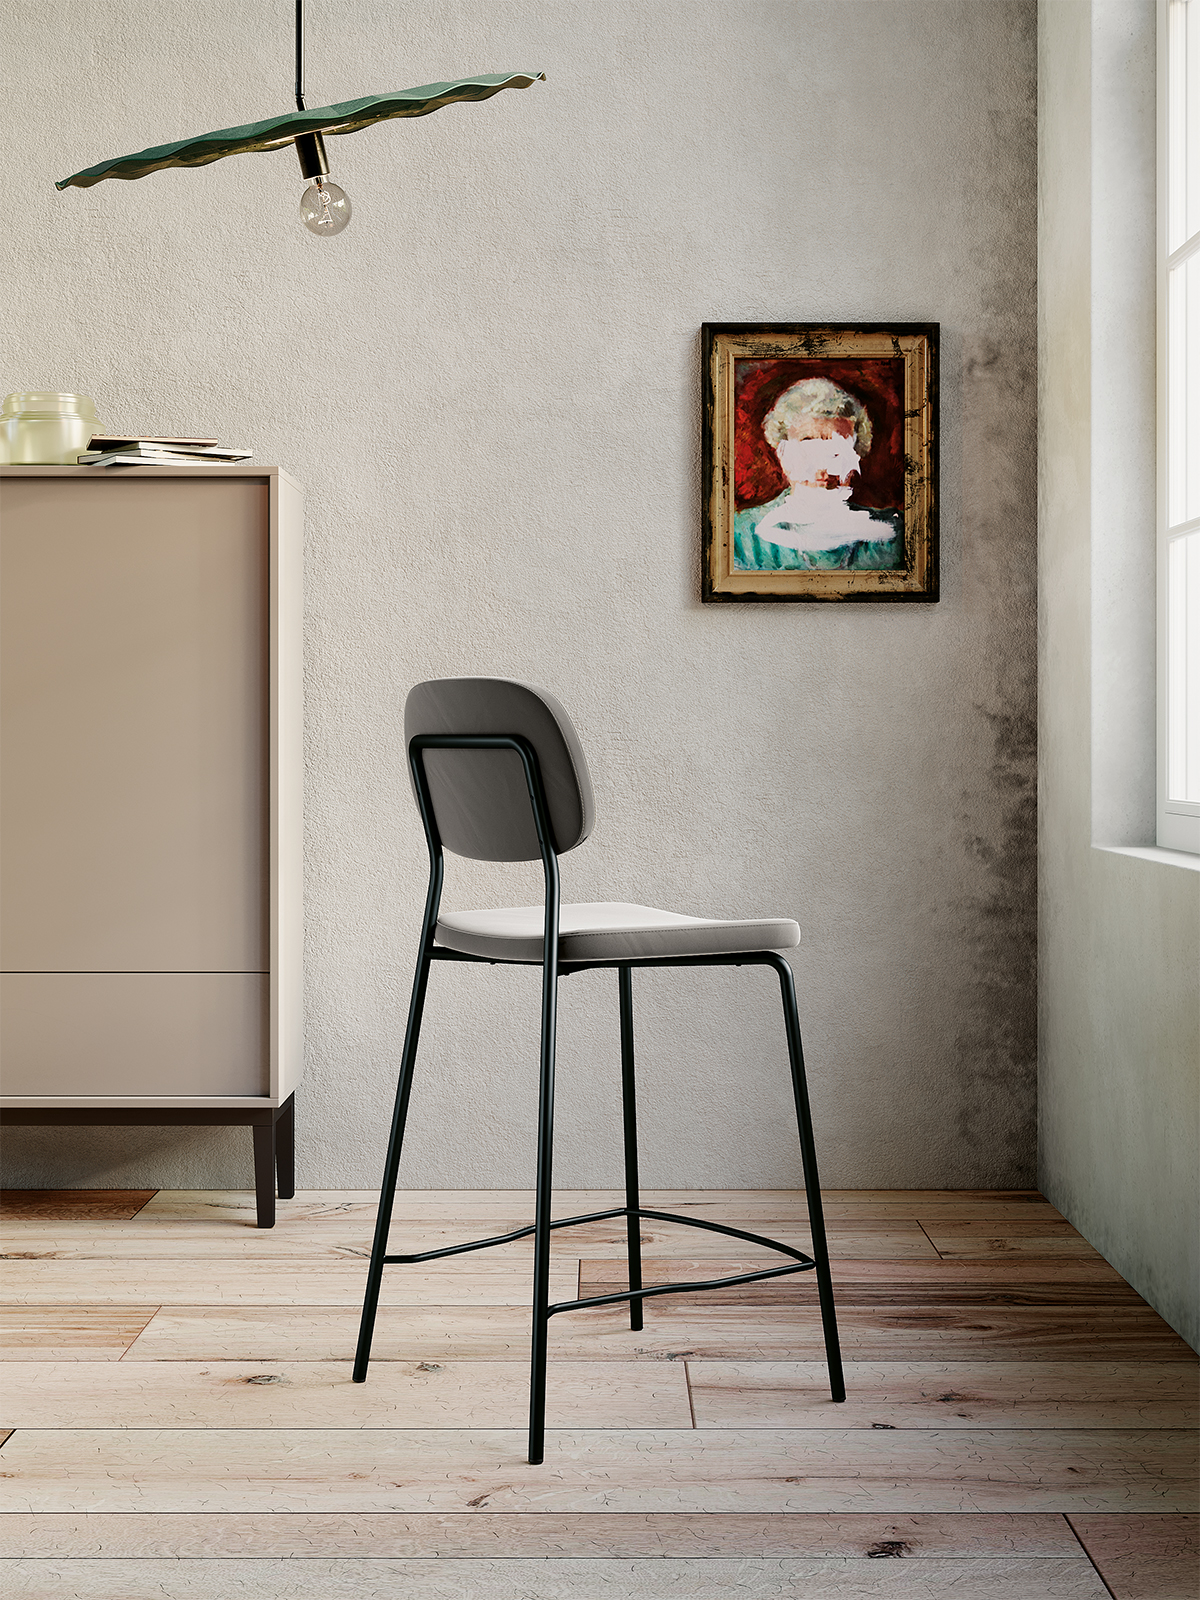 Personalisation, stylishness and functionality: Arredo3 presents its new catalogue of tables and chairs - 4